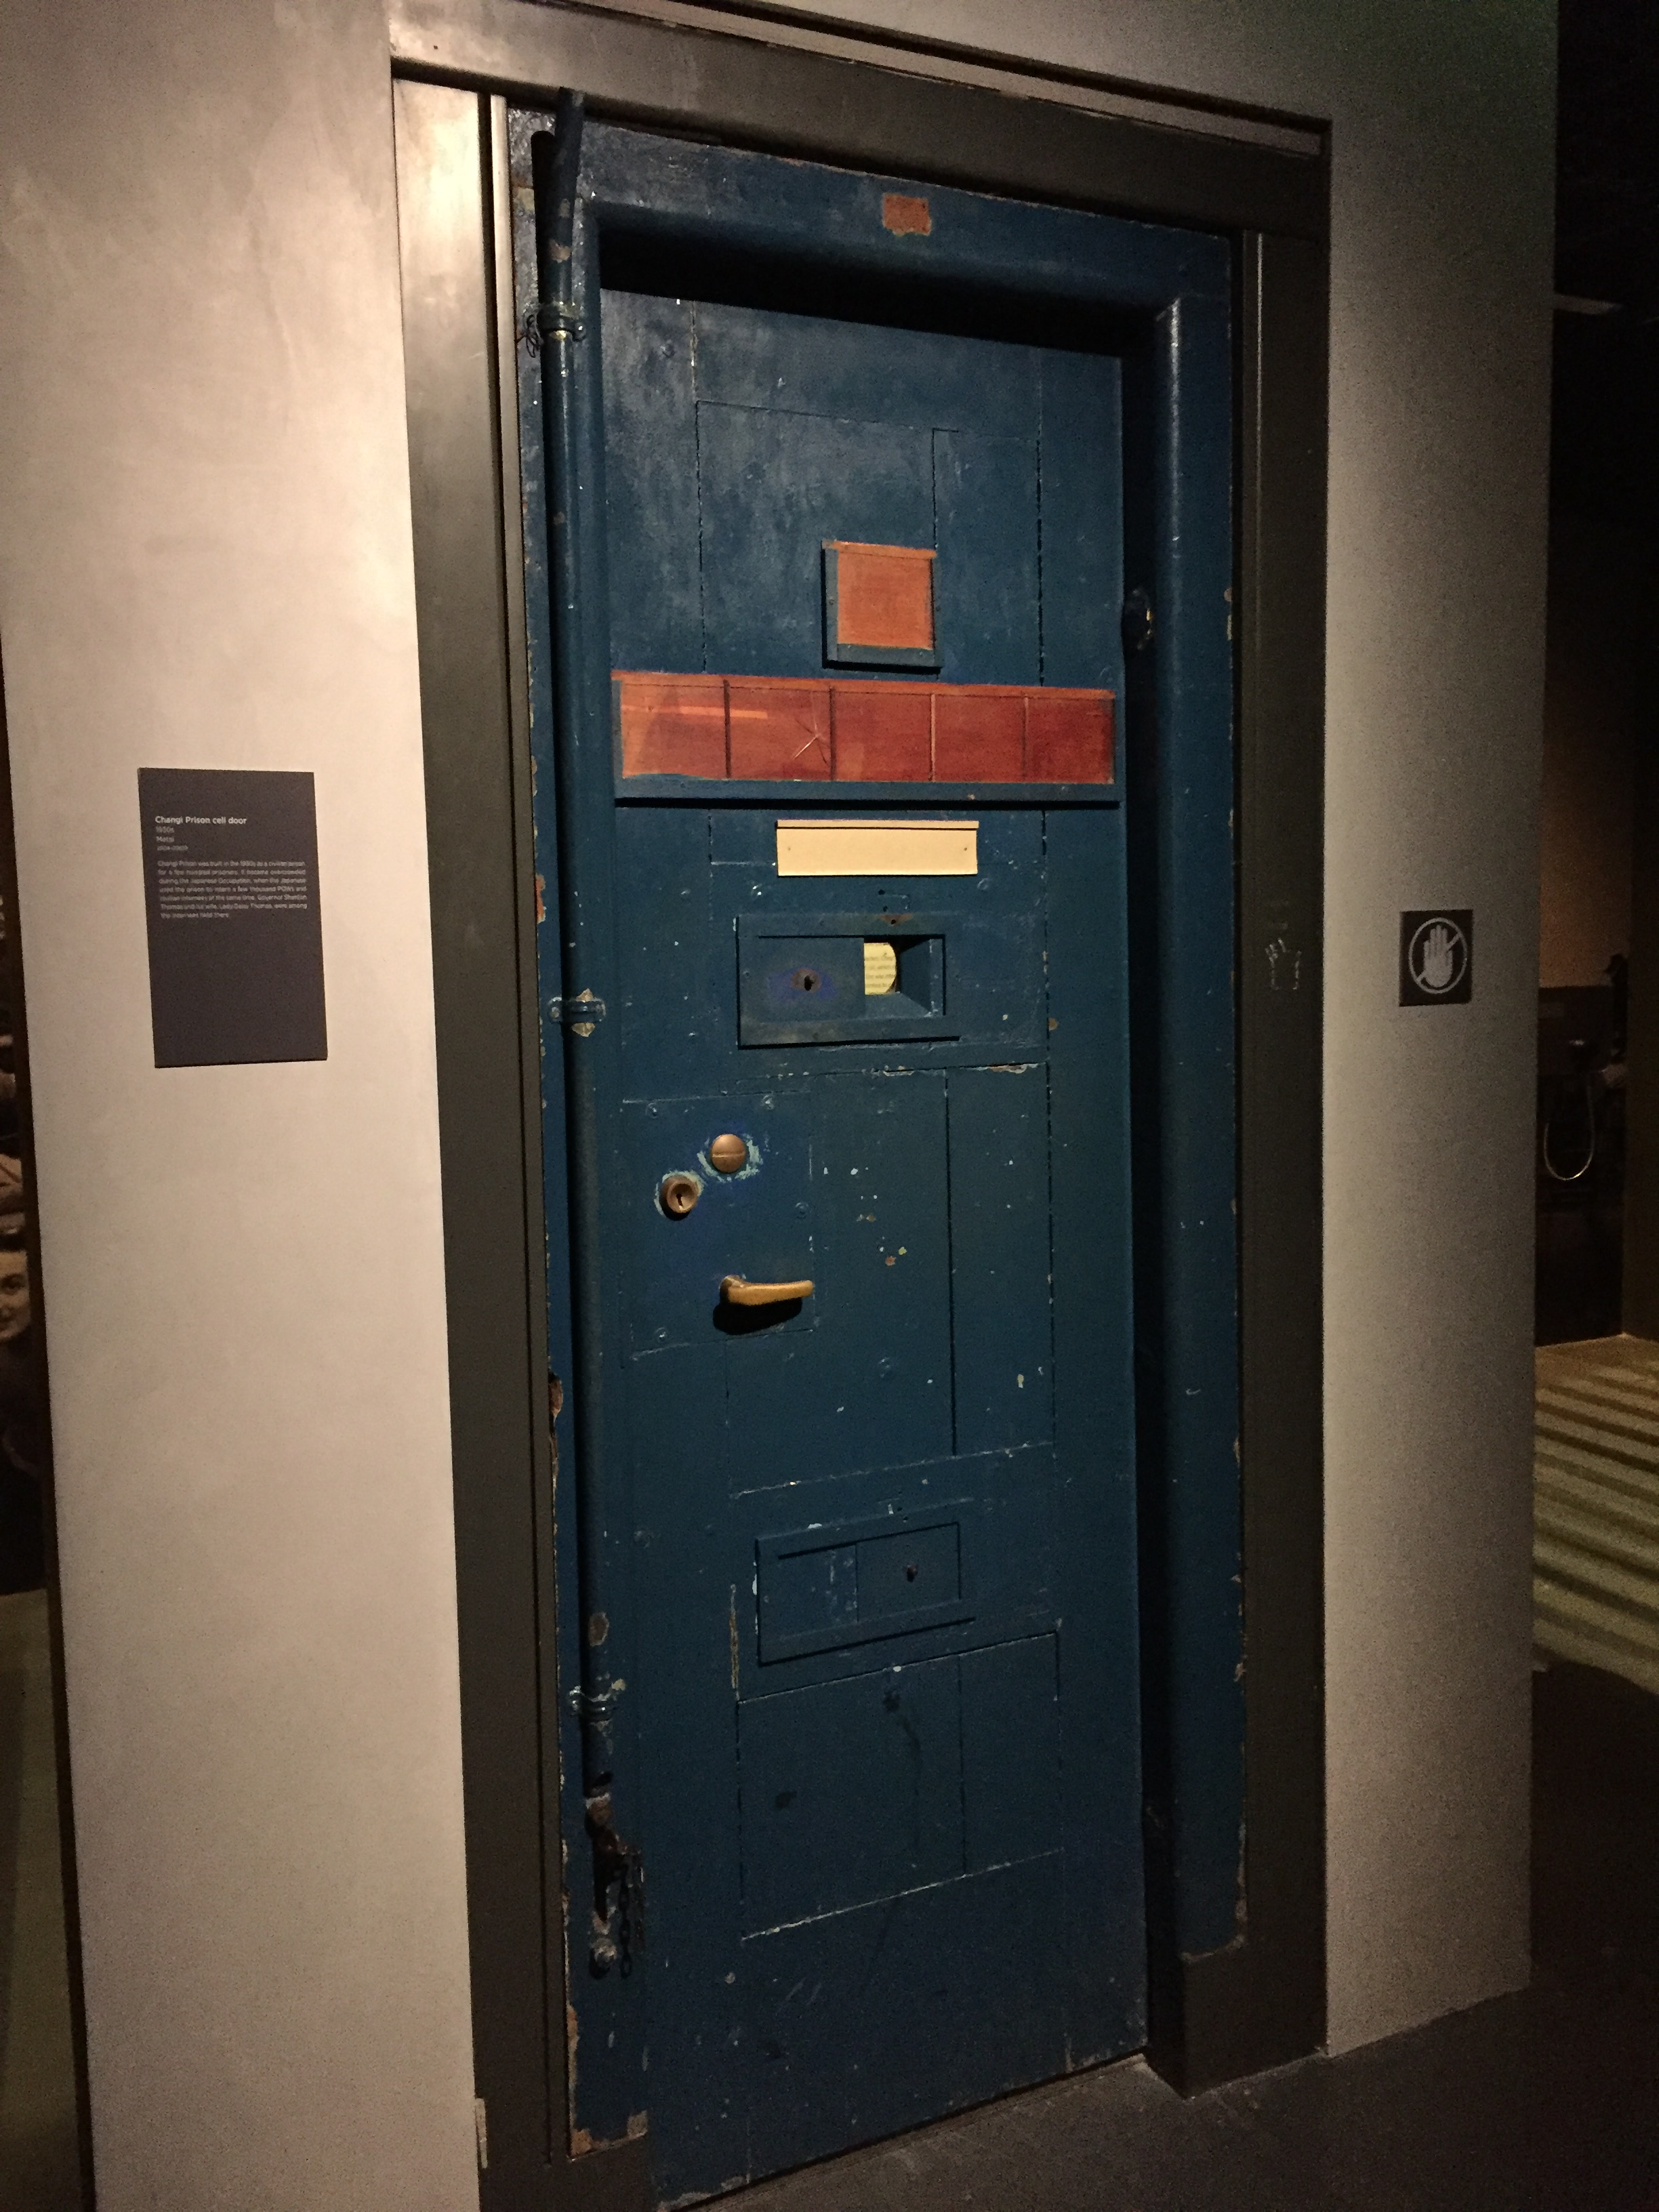 FileChangi Prison cell door (exterior) Singapore History Gallery National Museum & File:Changi Prison cell door (exterior) Singapore History Gallery ...